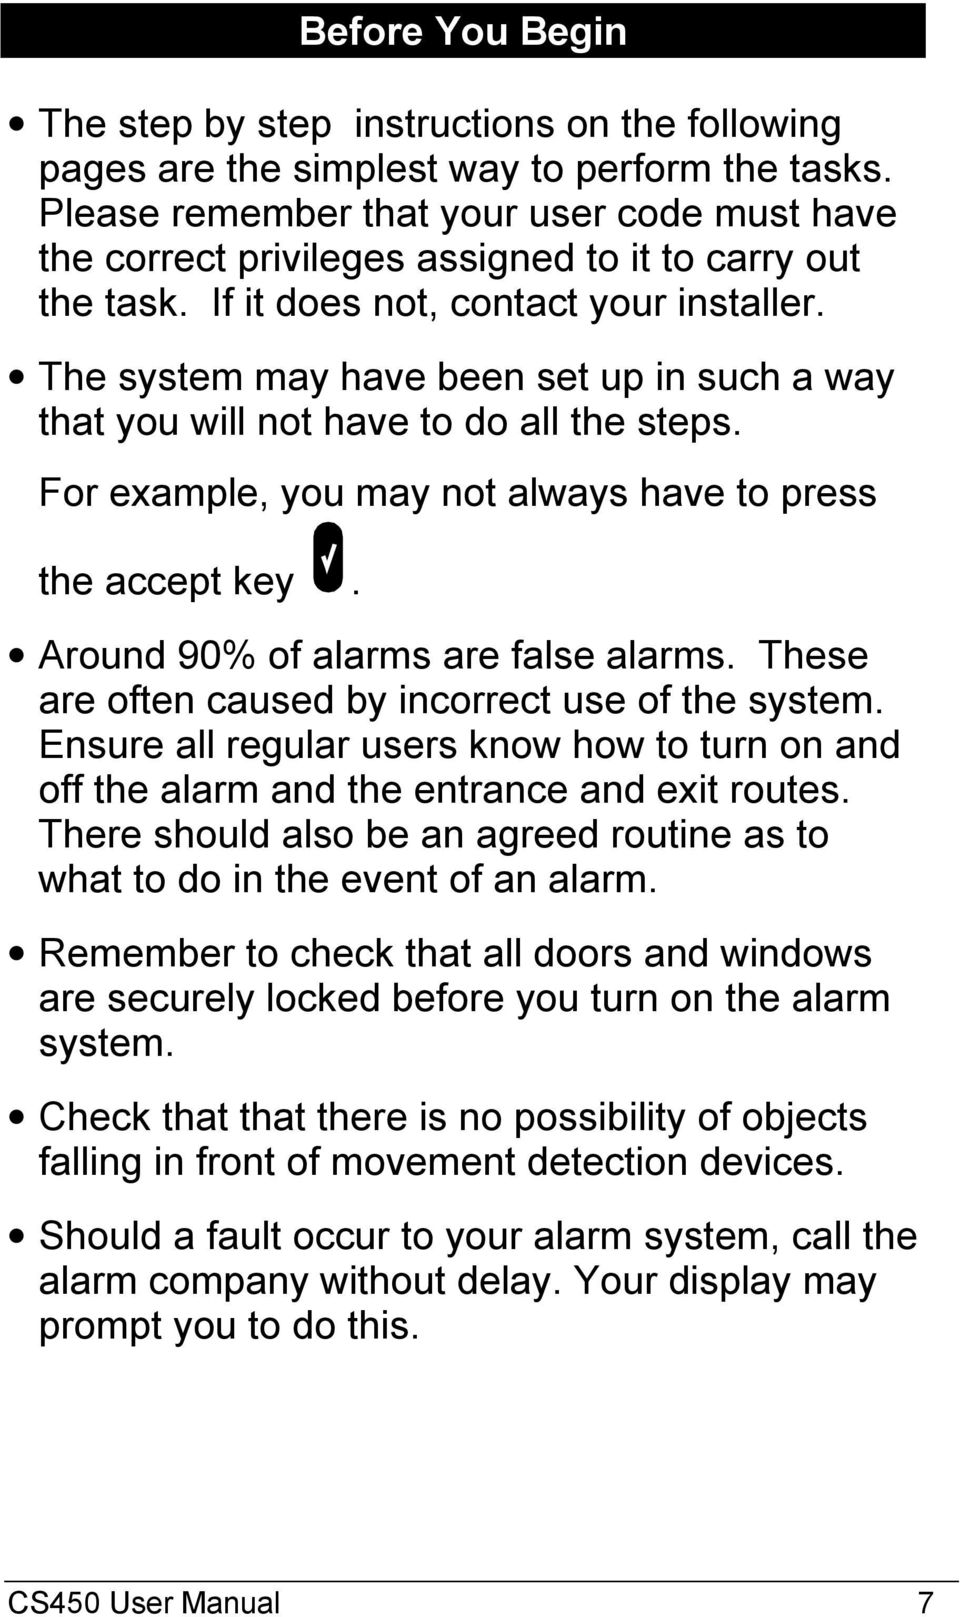 The system may have been set up in such a way that you will not have to do all the steps. For example, you may not always have to press the accept key. Around 90% of alarms are false alarms.